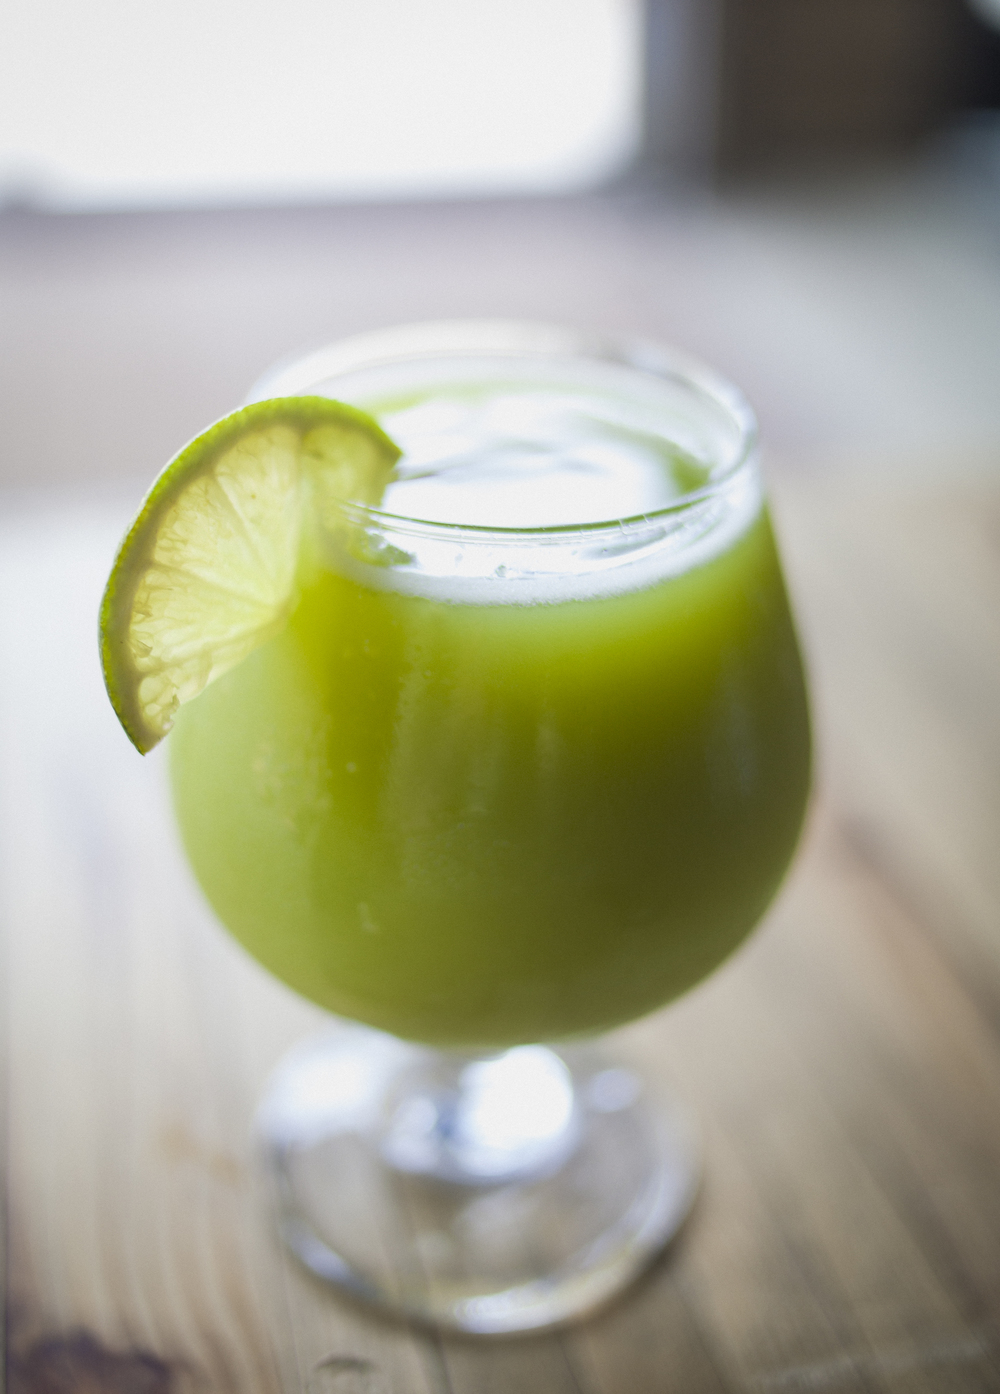 The Shinsen juice is heavy on apples, ginger, and deliciousness.